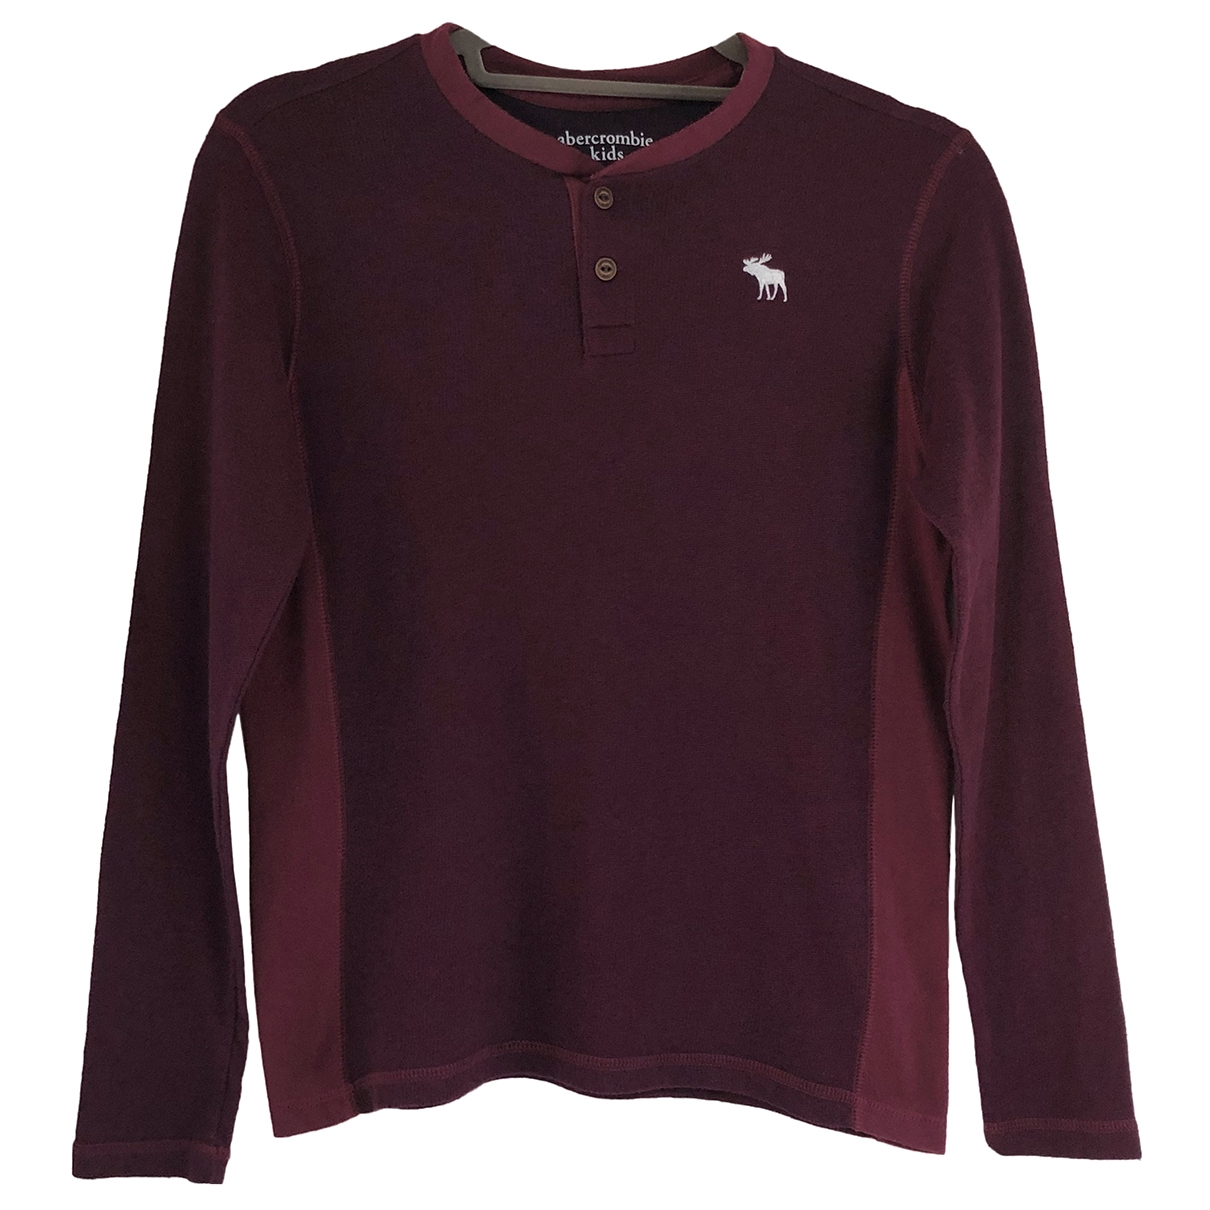 Abercrombie & Fitch \N Burgundy Cotton Knitwear for Kids 12 years - XS FR